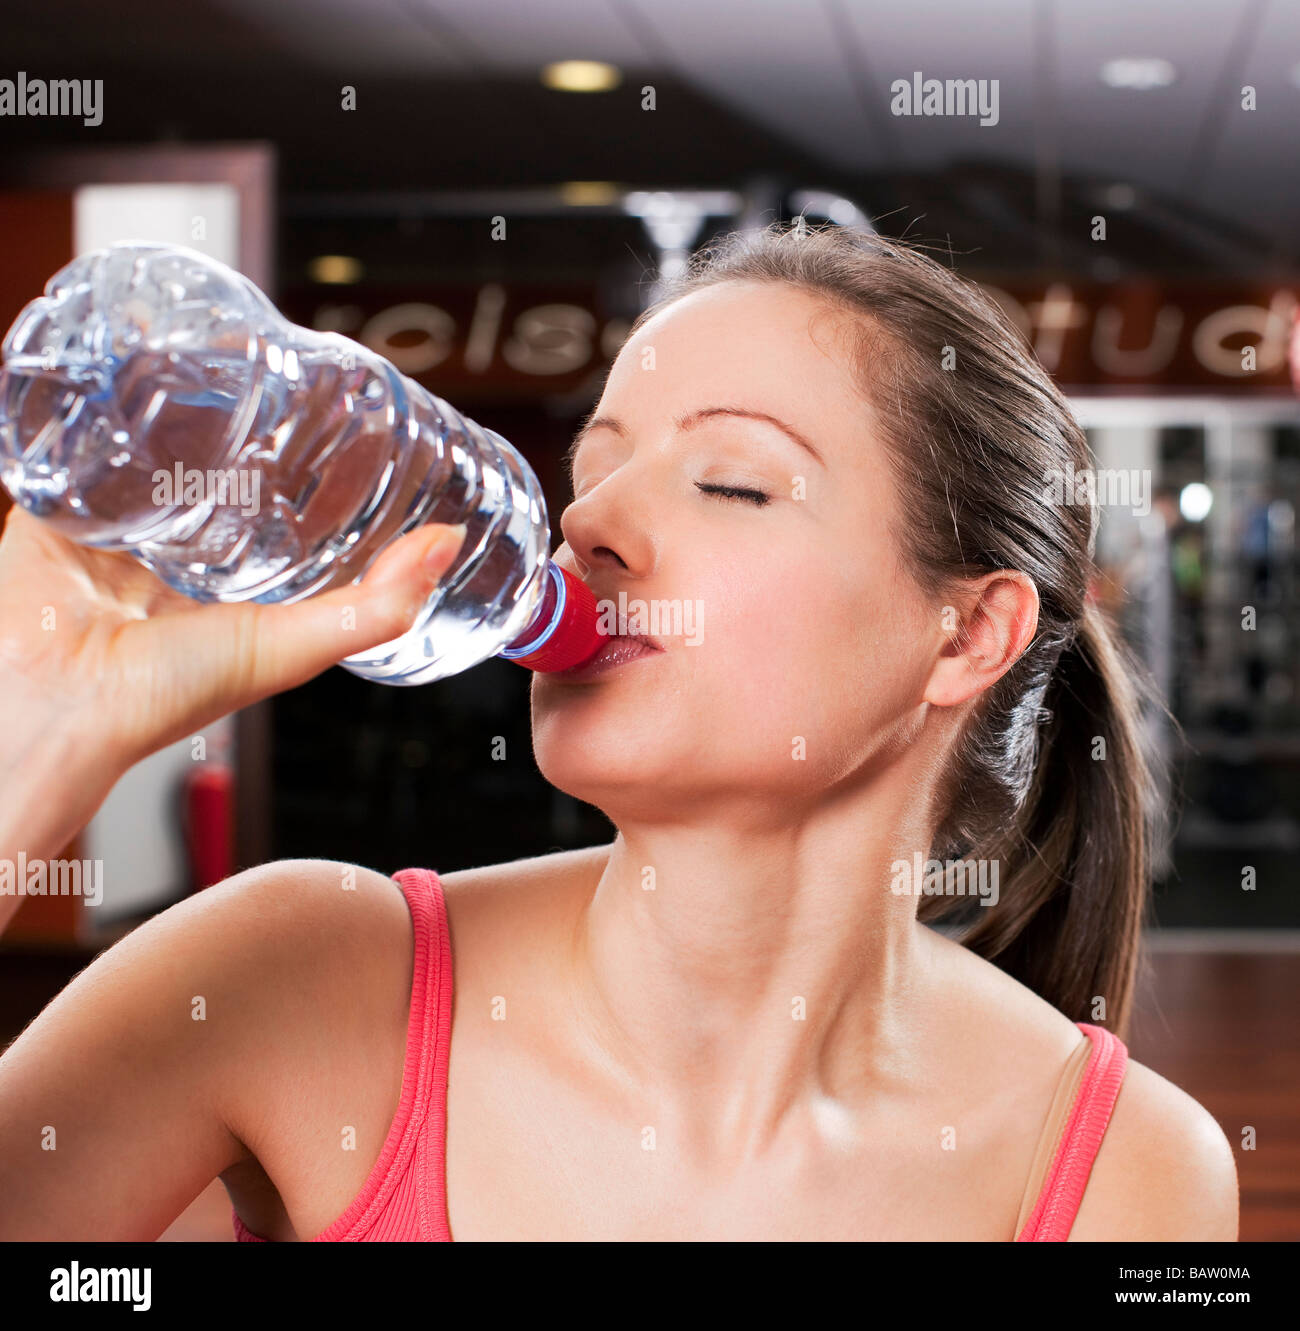 headshot of young drinking water from plastic bottle in gym - Stock Image